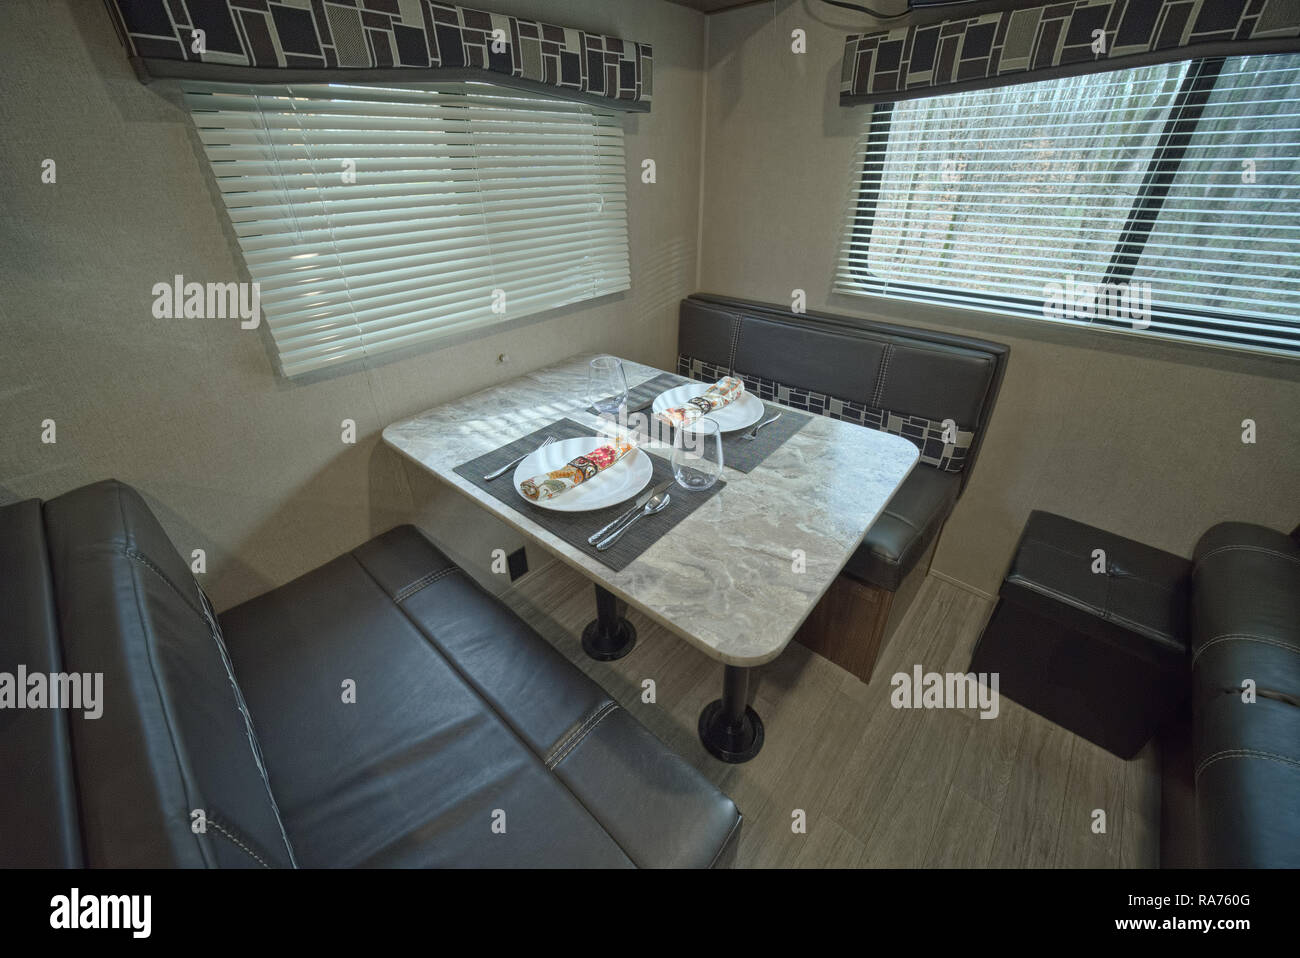 Rv Stock Photos Amp Rv Stock Images Alamy